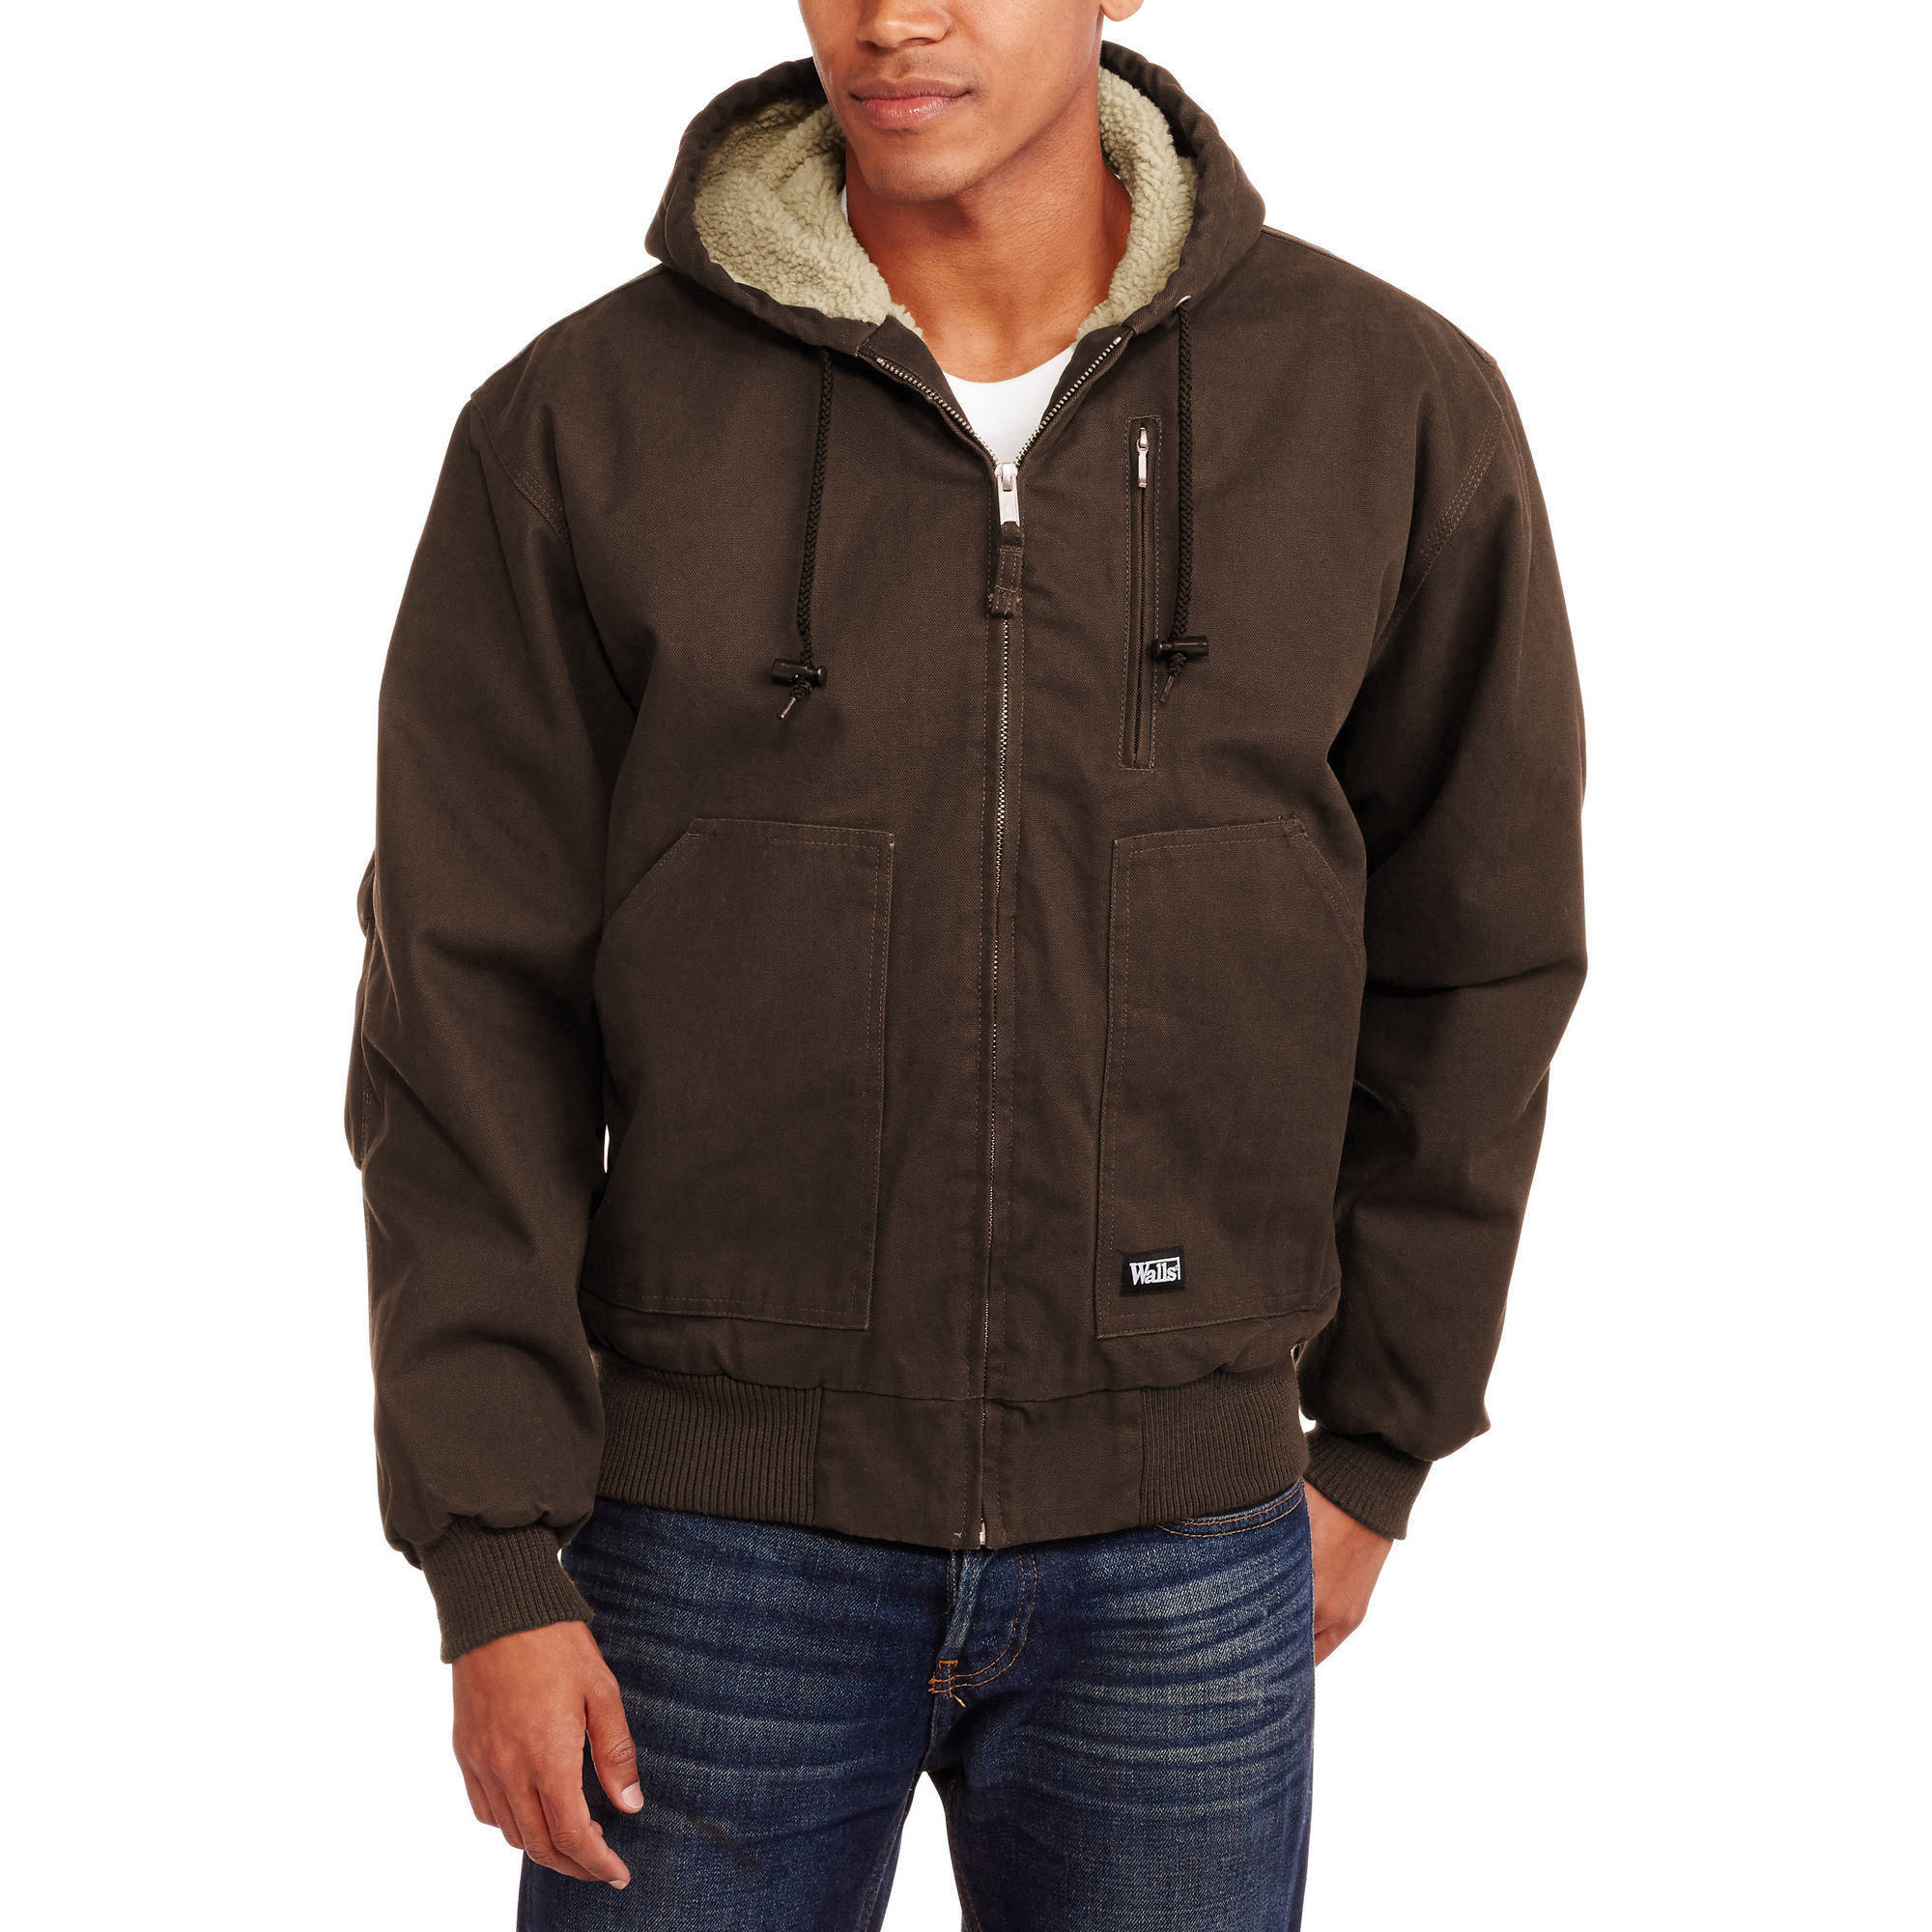 Walls Big and Tall Men's Washed Duck Sherpa Lined Hooded Jacket